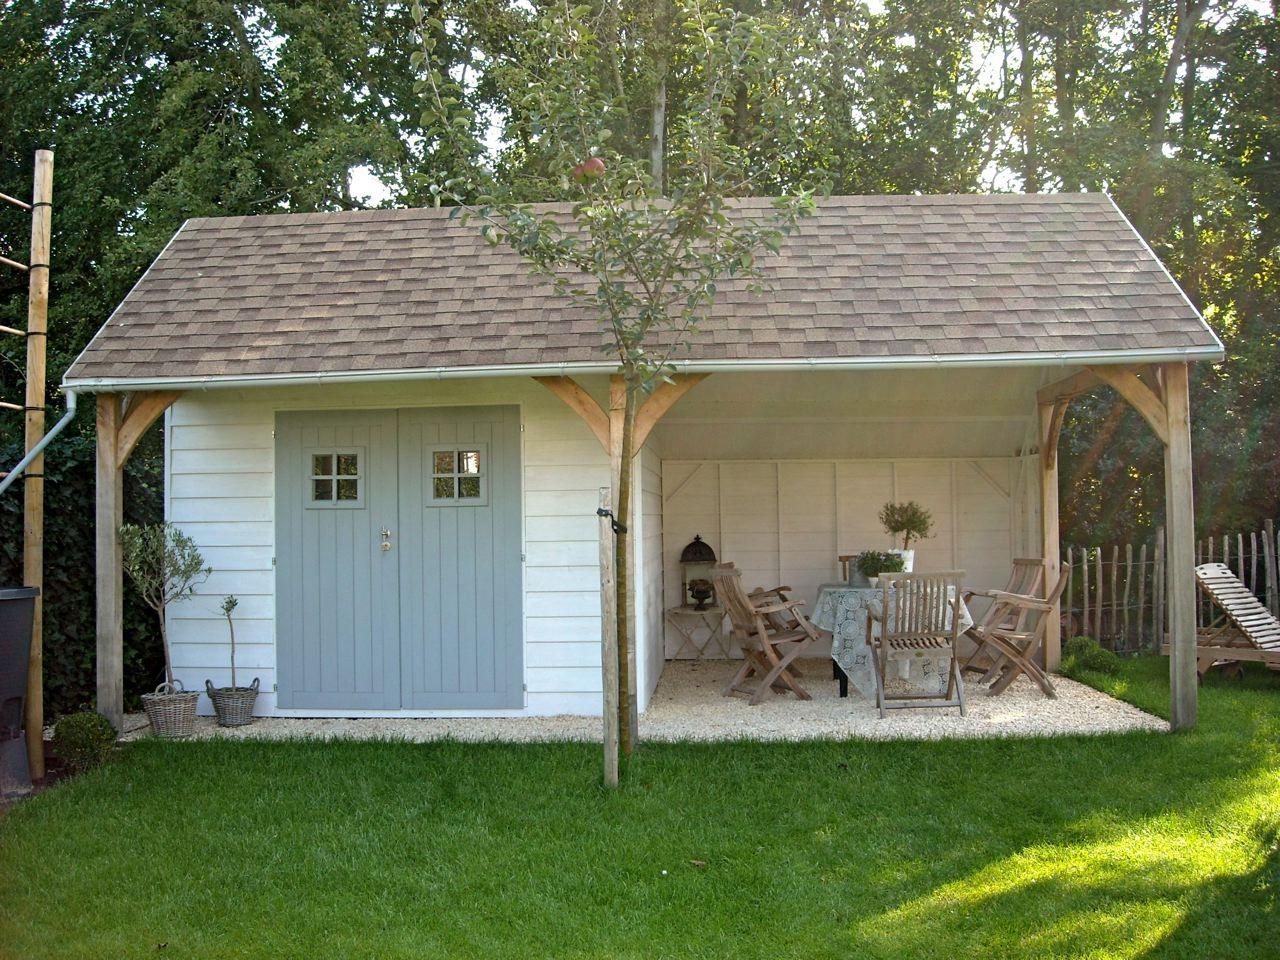 diy how to build a shed - Garden Sheds With Veranda